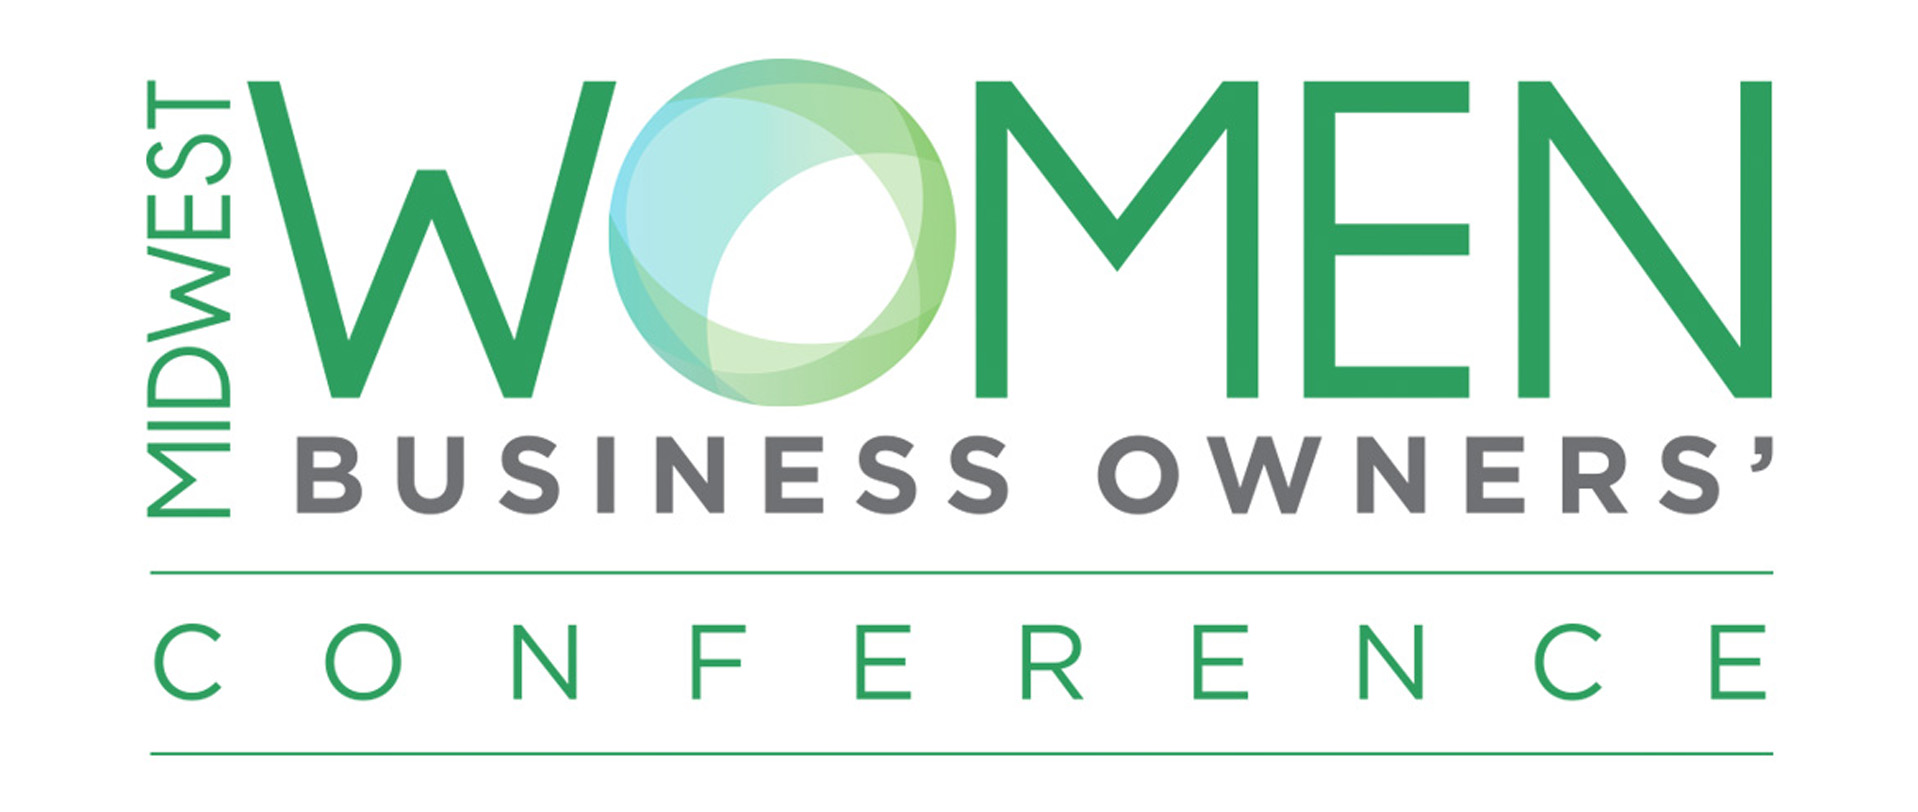 Midwest Women Business Owner's Conference 2016